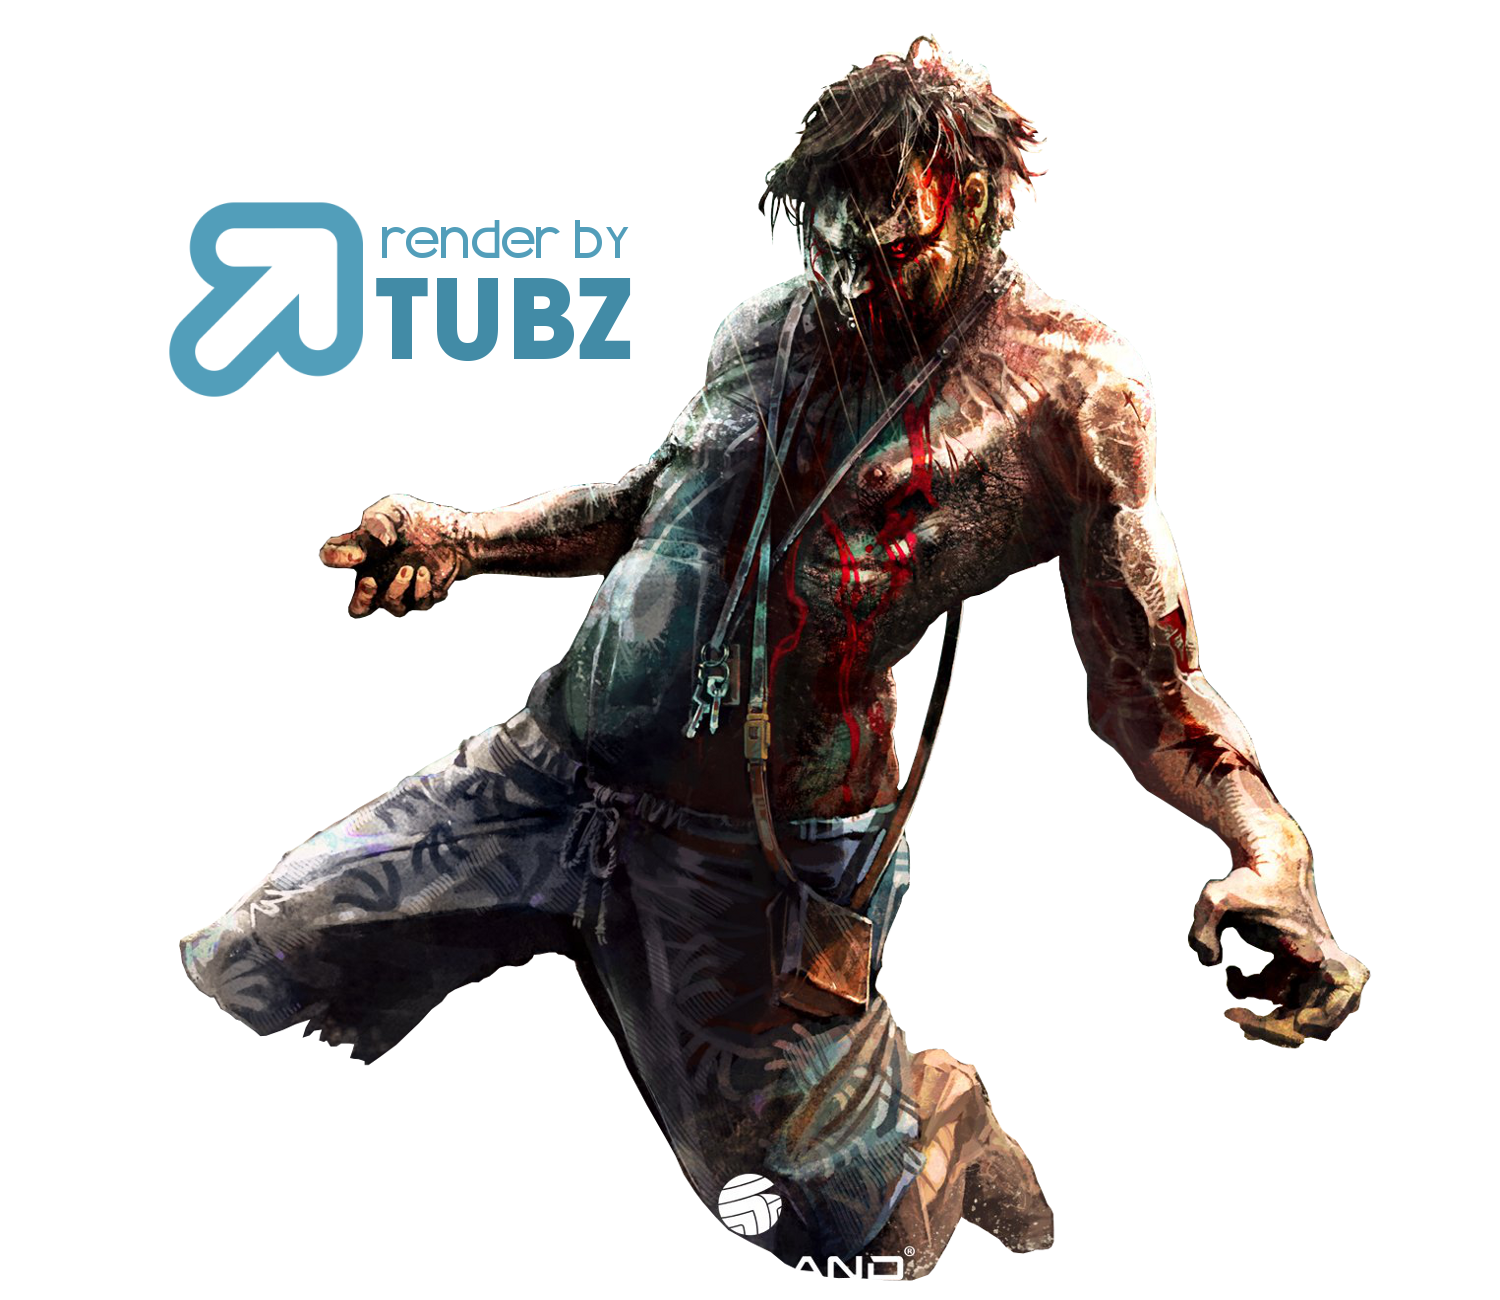 Dead Island Hd Png - Dead Island Png Picture Png Image, Transparent background PNG HD thumbnail